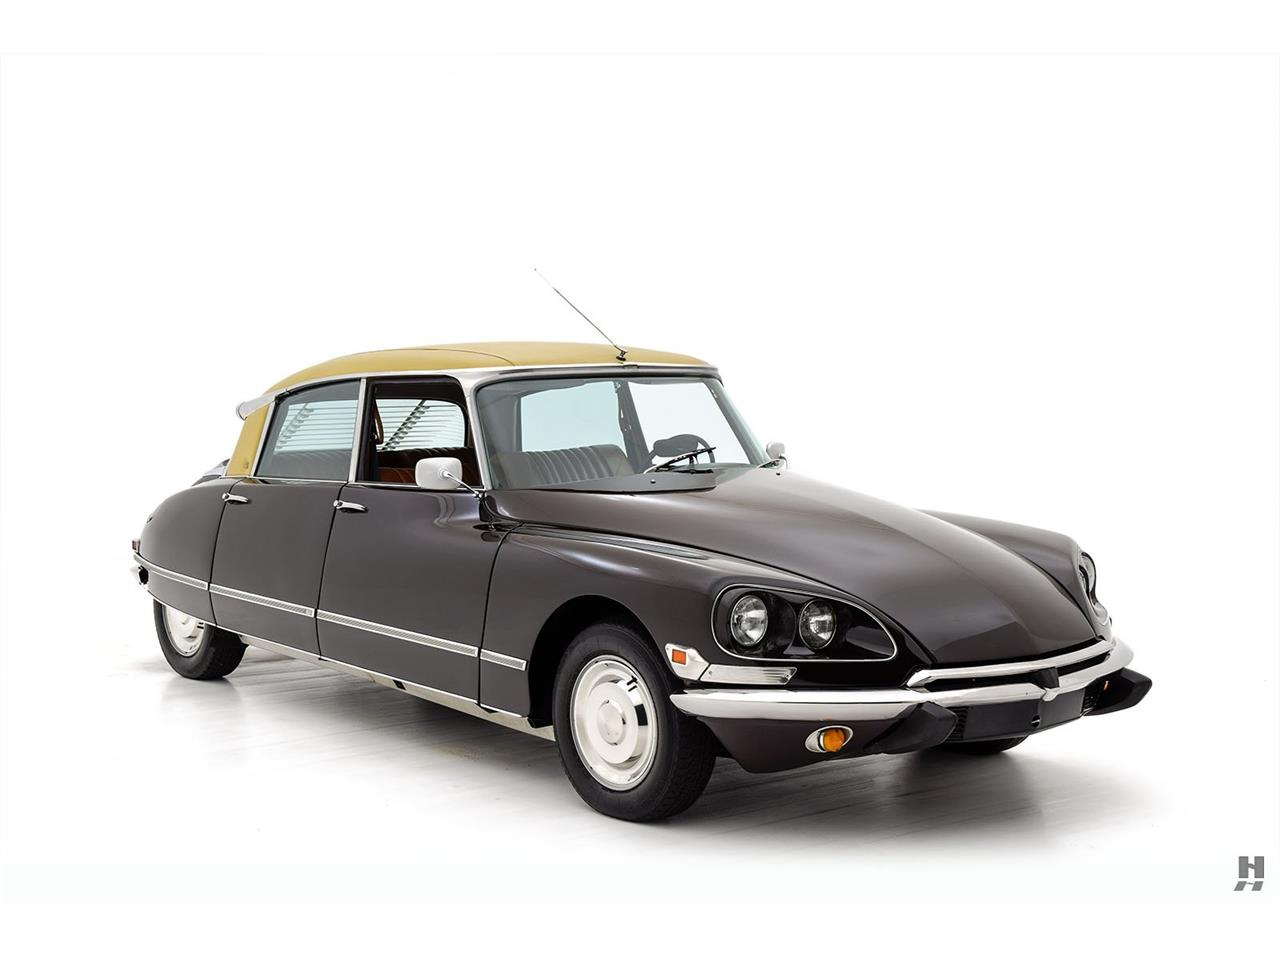 Large Picture of Classic 1969 Citroen DS21 Pallas located in Missouri - OVD1